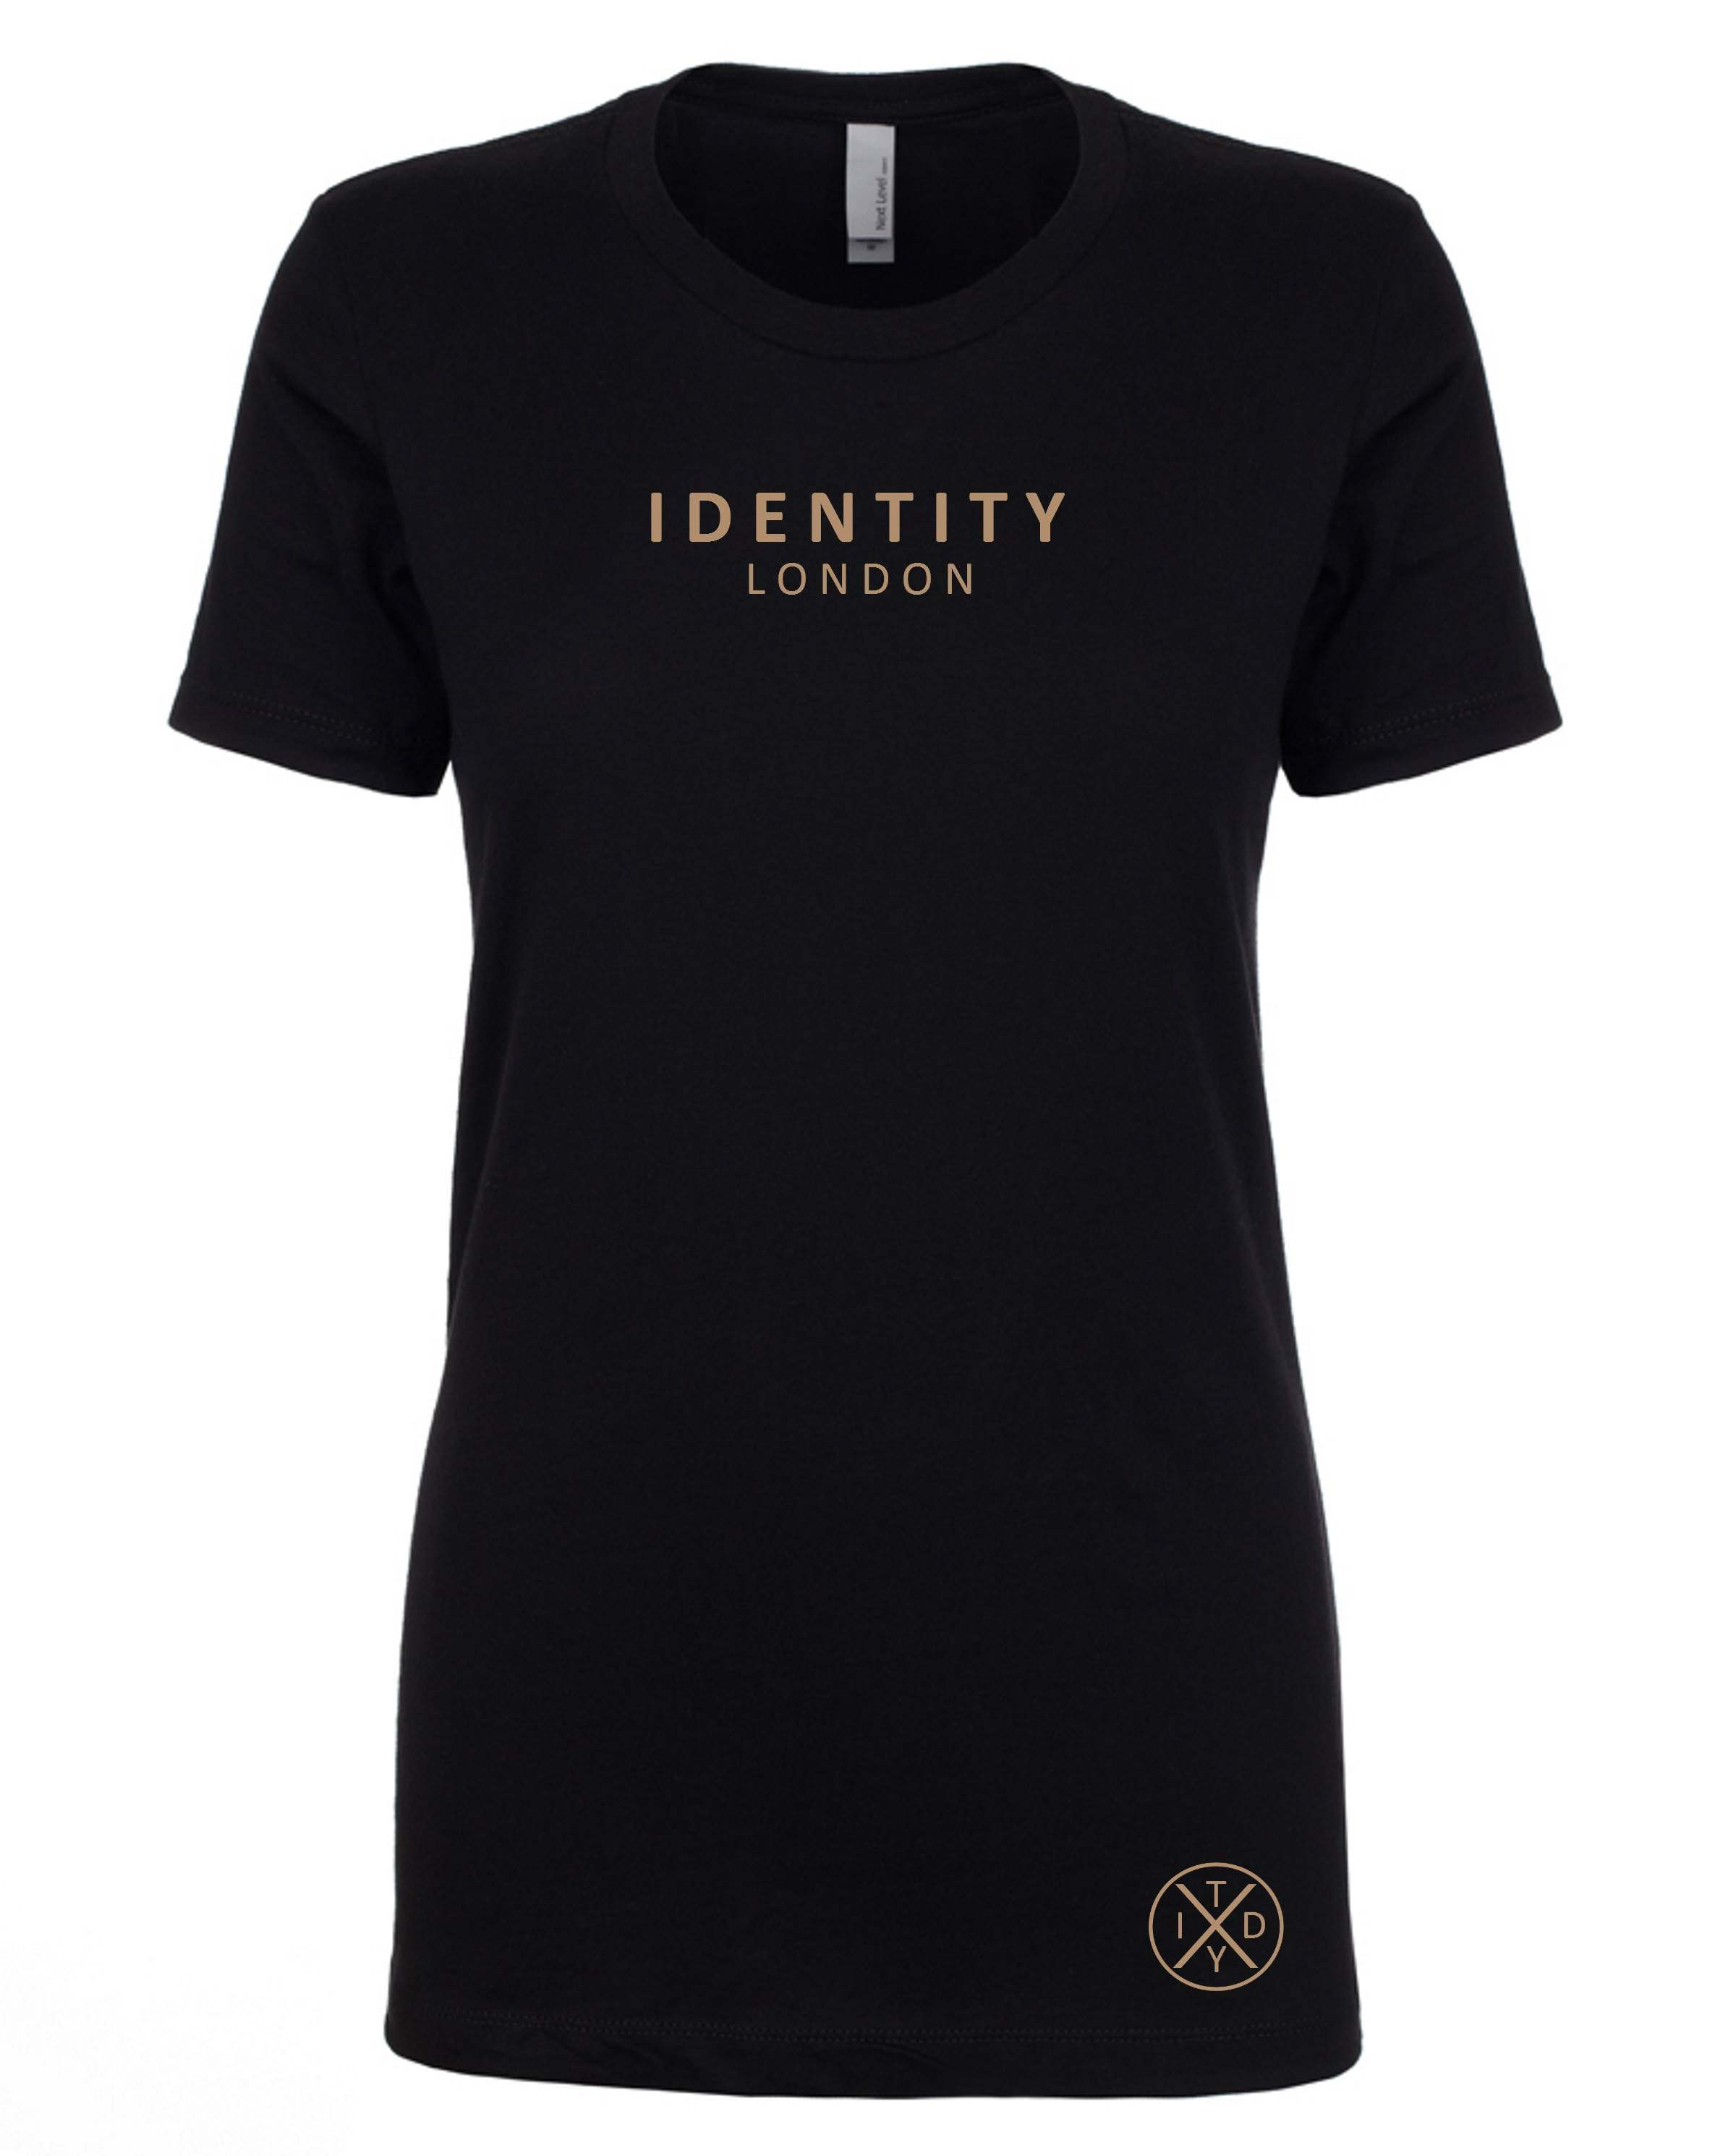 Womens Statement London T-Shirt (Limited Edition Rose Gold)